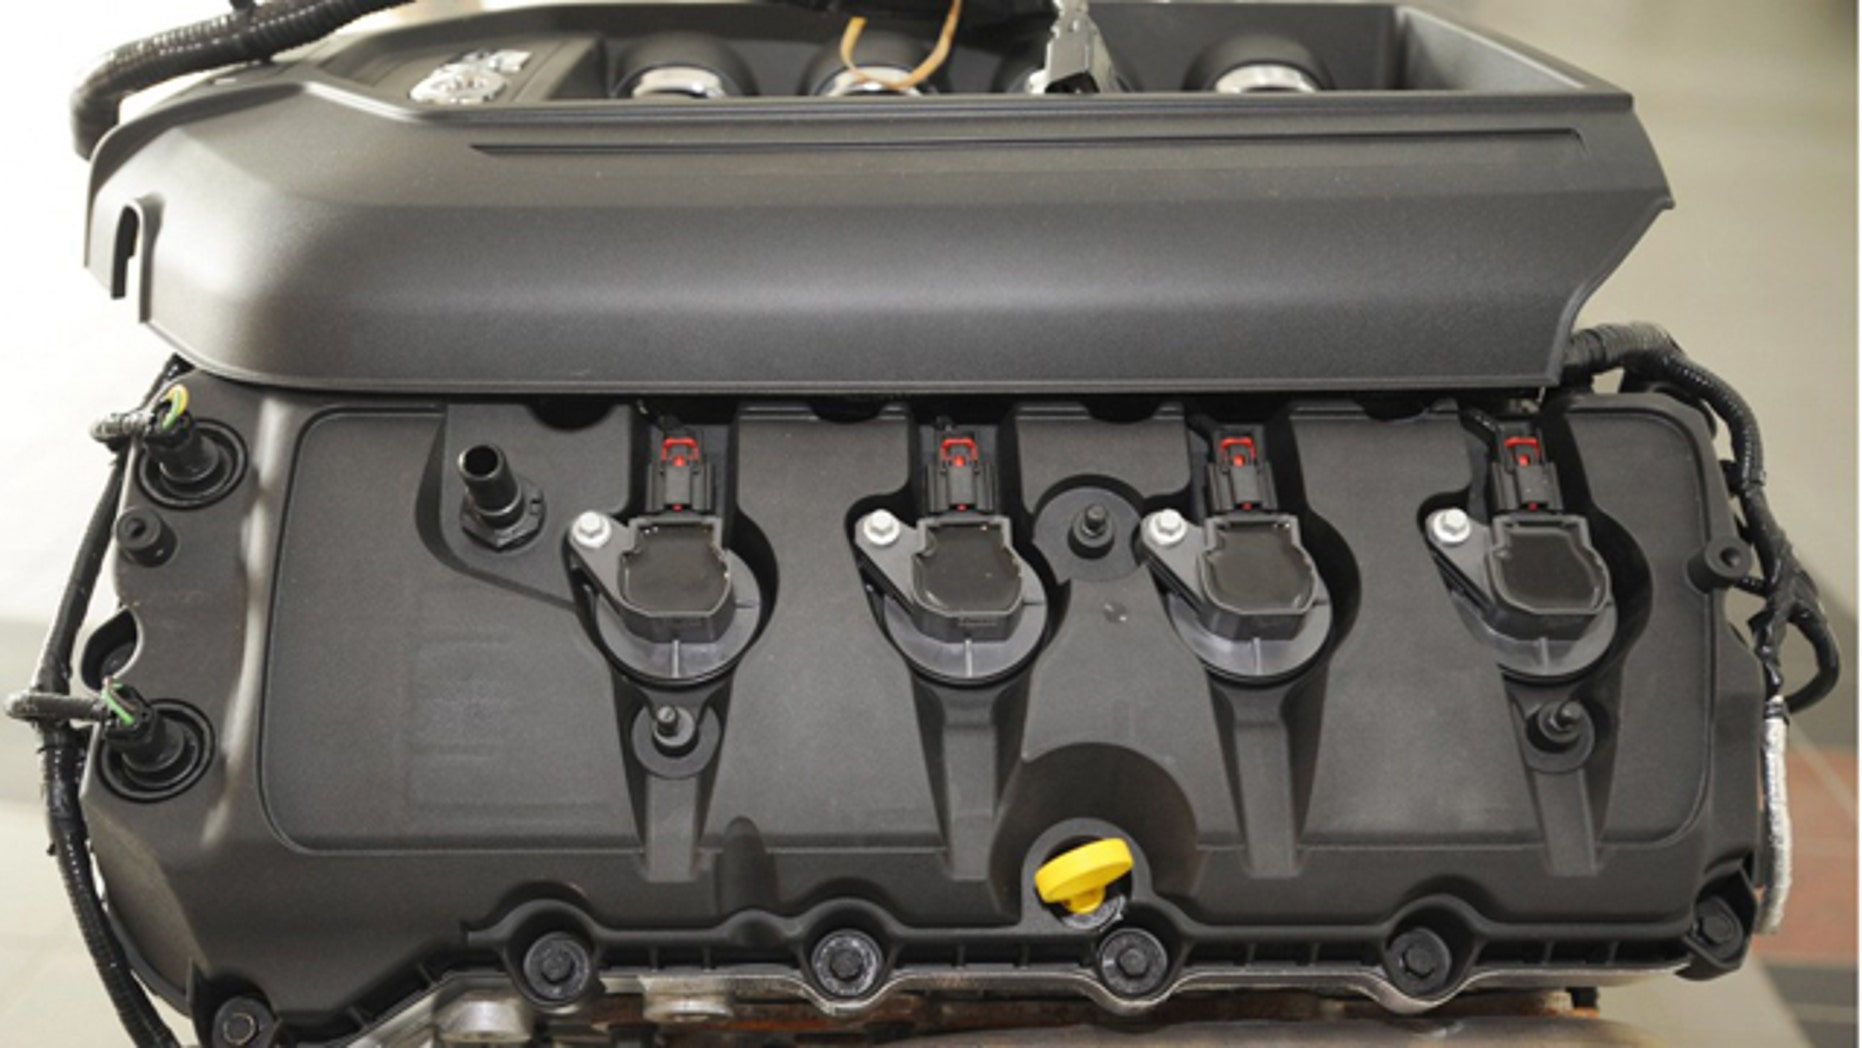 Ford Mustang 5.0-Liter Engine With EcoLon Valve Covers